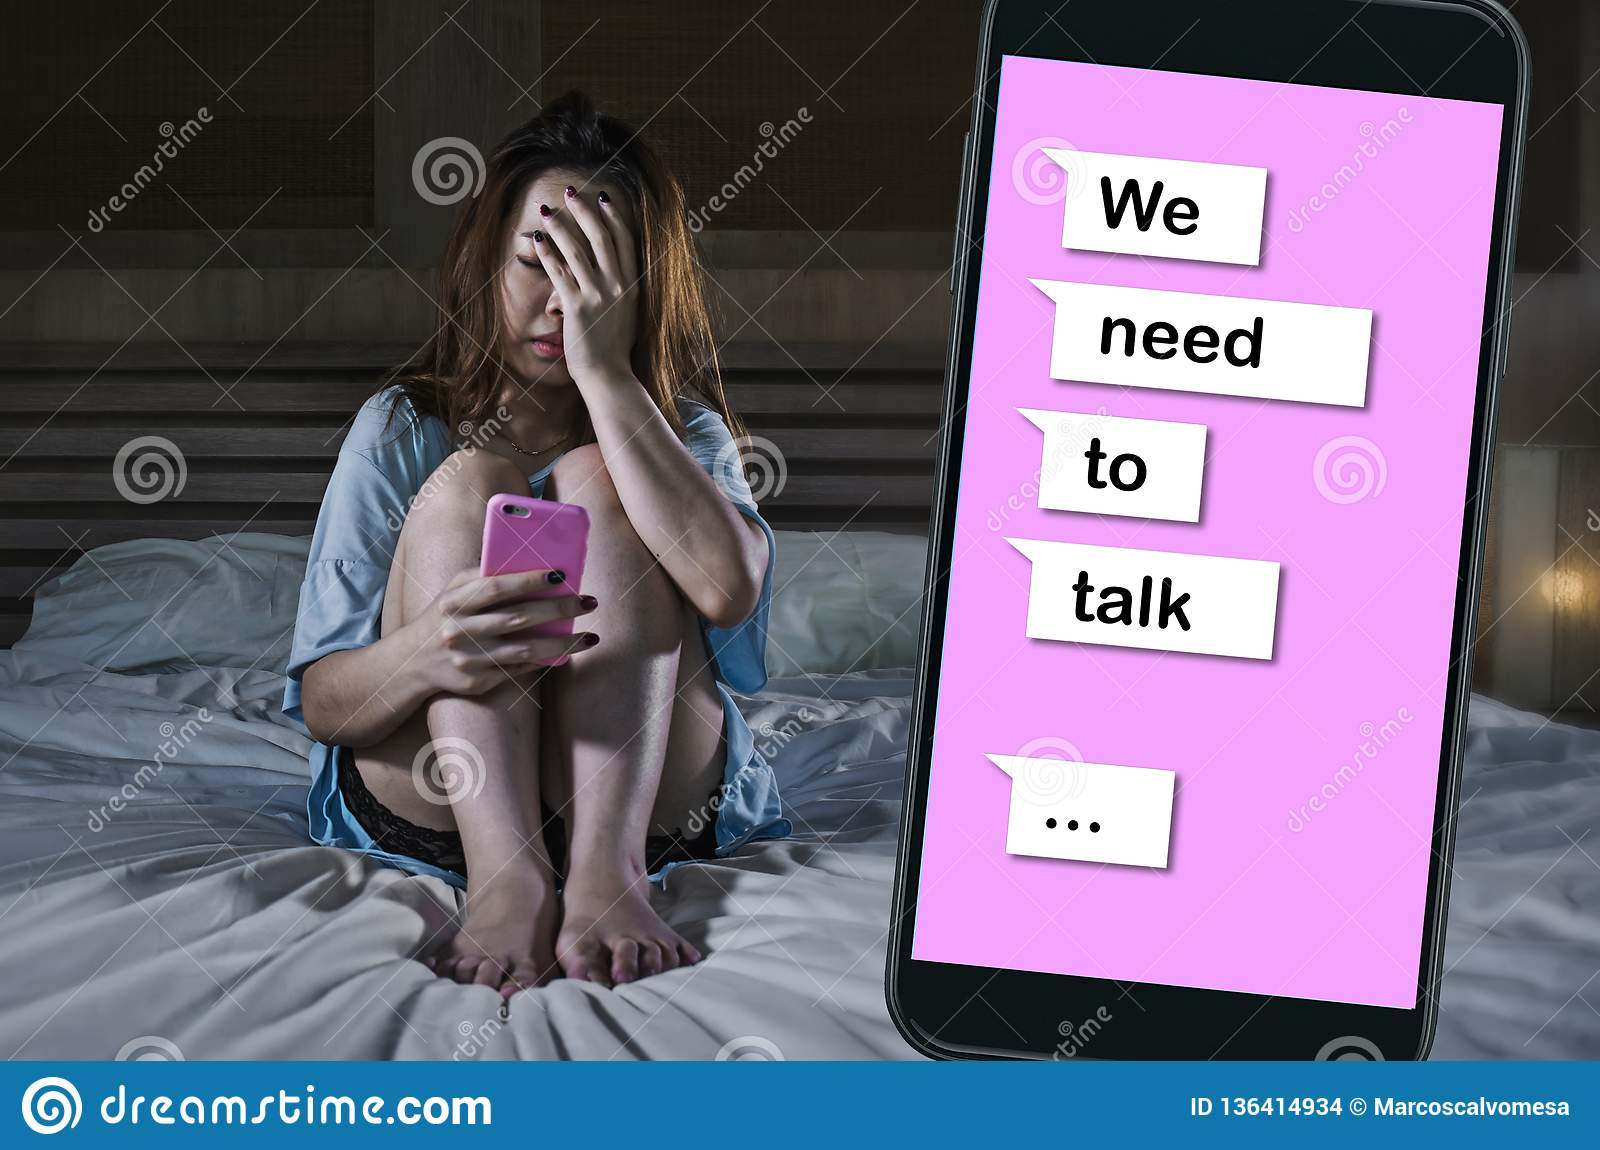 Sad Girl Feeling Depressed Crying In Bed Suffering Pain And Broken Heart Composite With Mobile Phone Online Text In Relationship Stock Photo Image Of Feeling Lonely 136414934